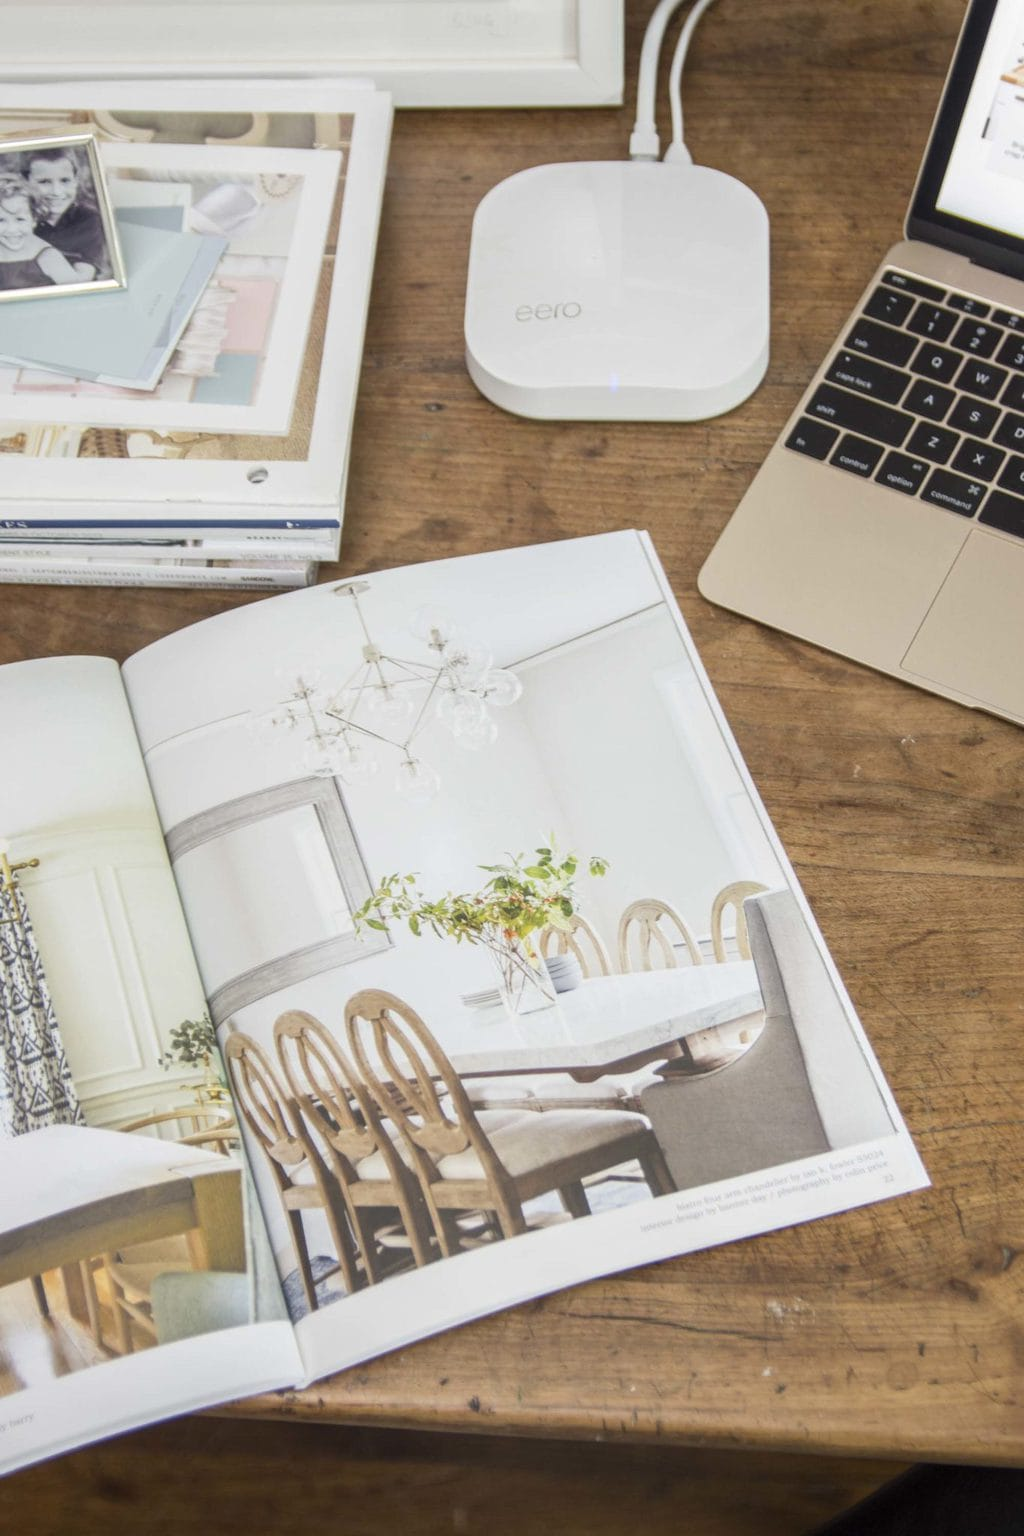 eero wifi system in modern home office with French farmhouse table desk and bookshelves on Thou Swell @thouswellblog